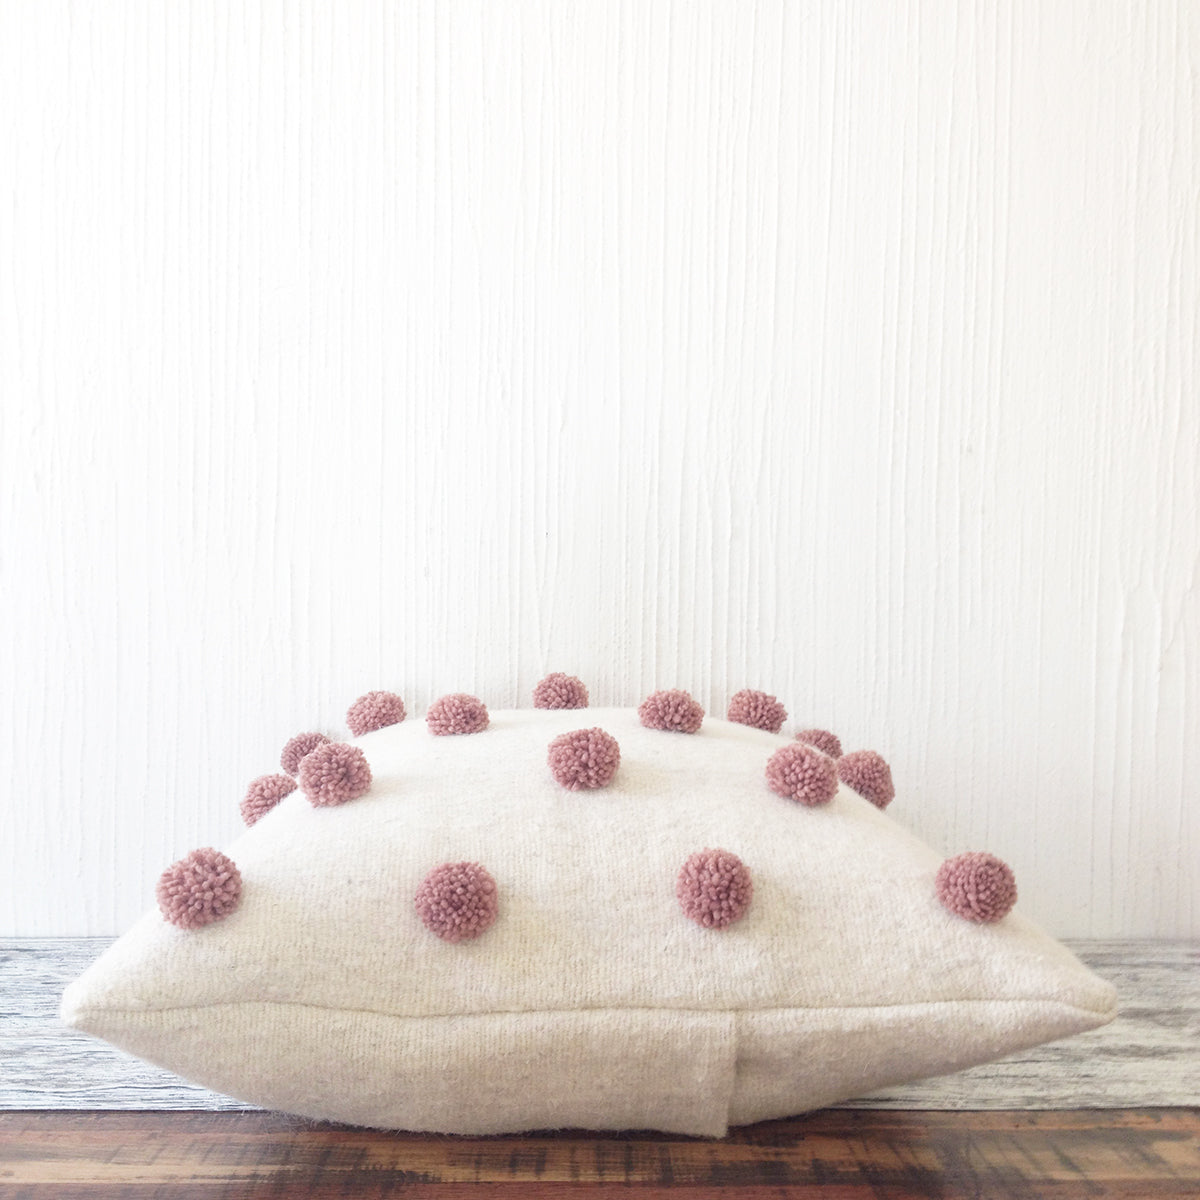 Pom Pom Pillow - Ivory, Gray or Dusty Rose